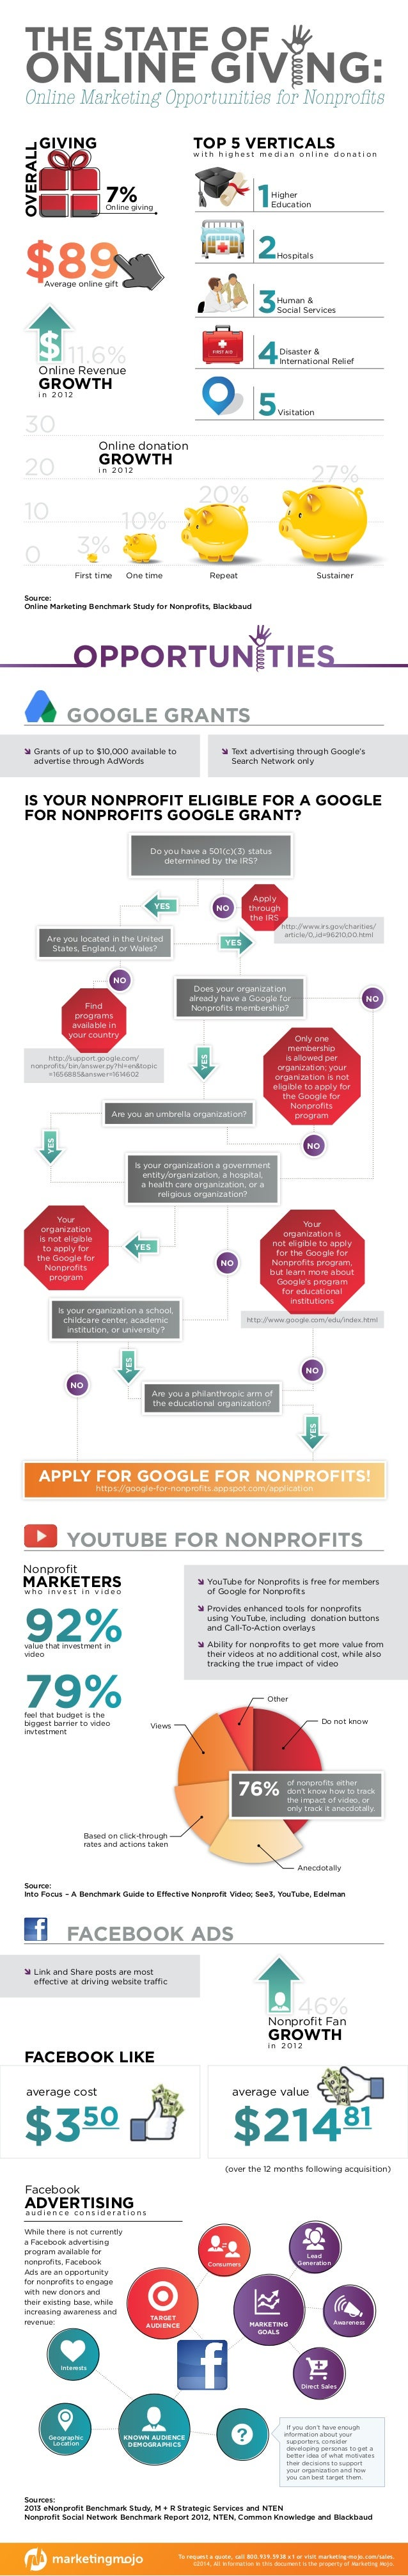 INFOGRAPHIC: The State of Online Giving